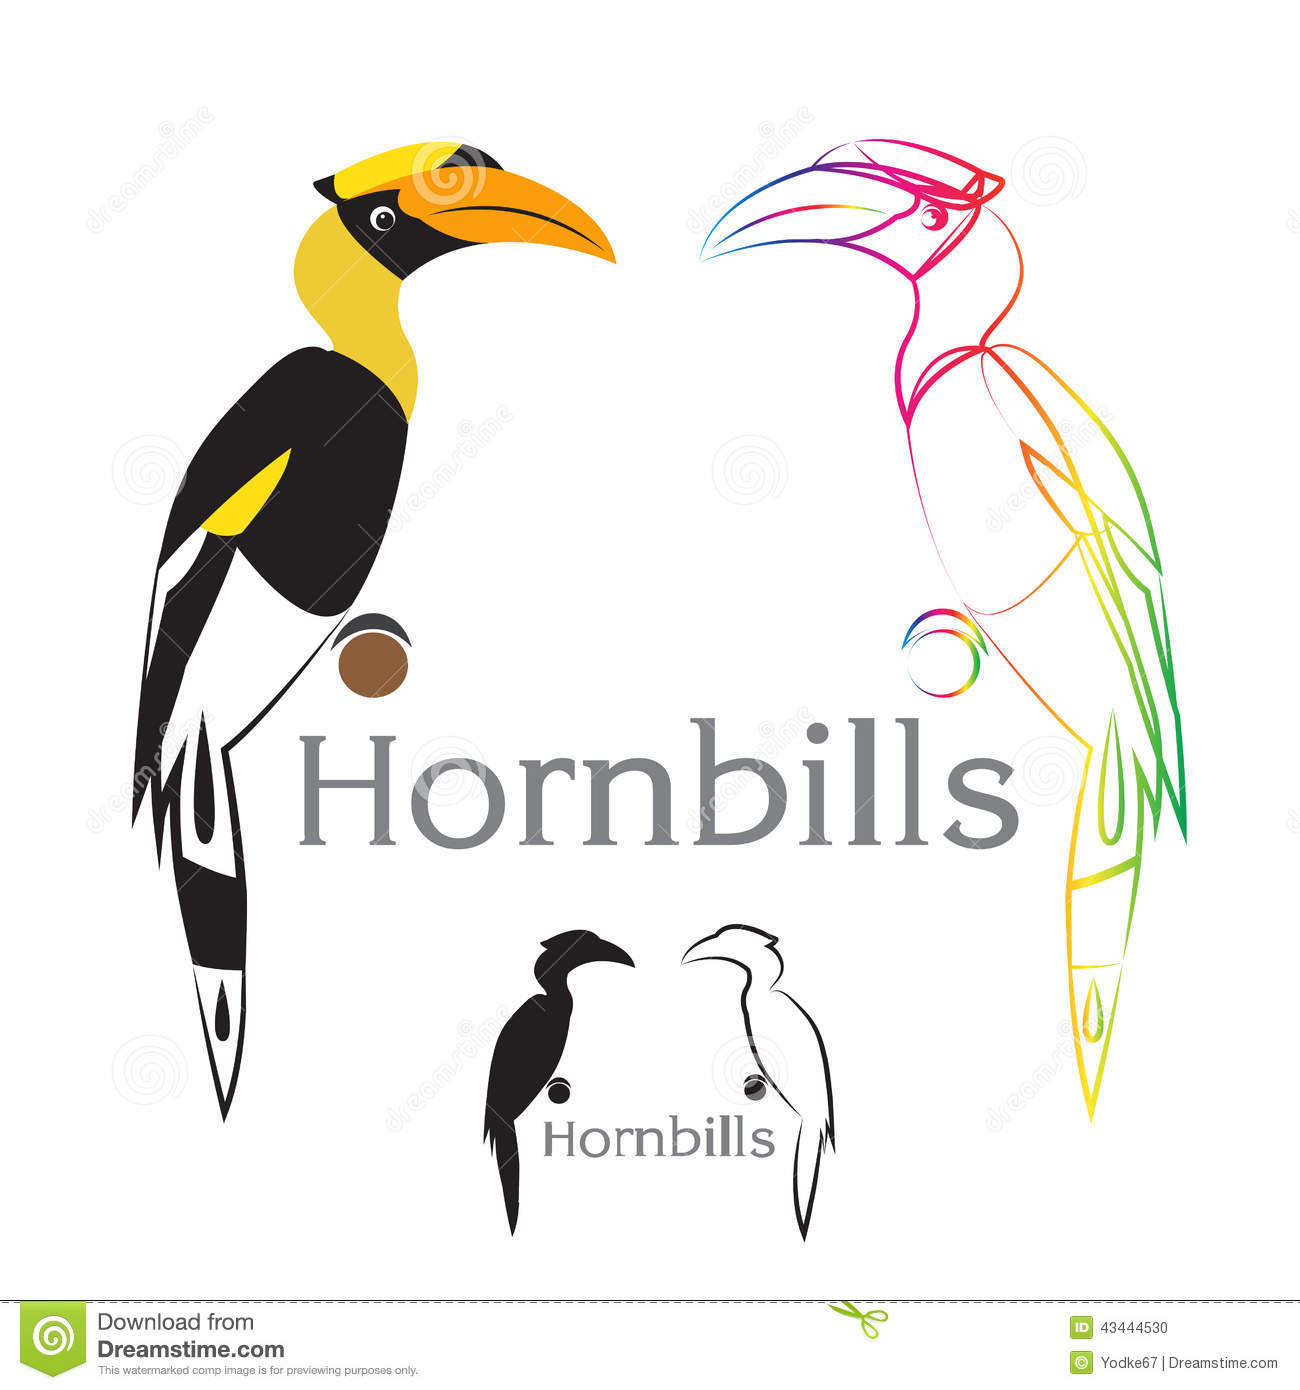 Hornbill clipart #3, Download drawings